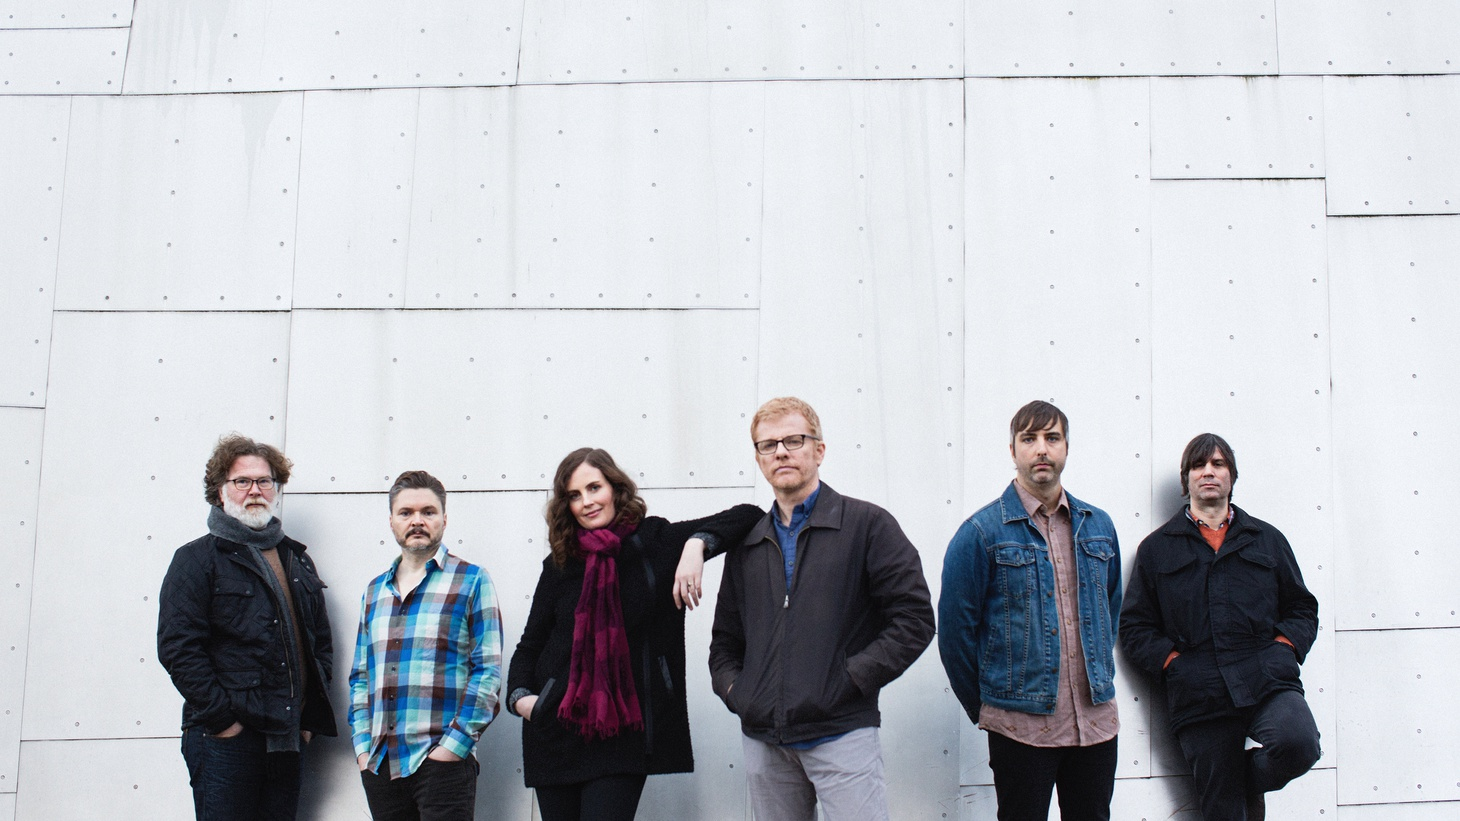 Expertly crafted pop hooks and harmonies are the core elements of every record from The New Pornographers. So, as the members of the Canadian collective changes, their sound remains as infectious as ever.